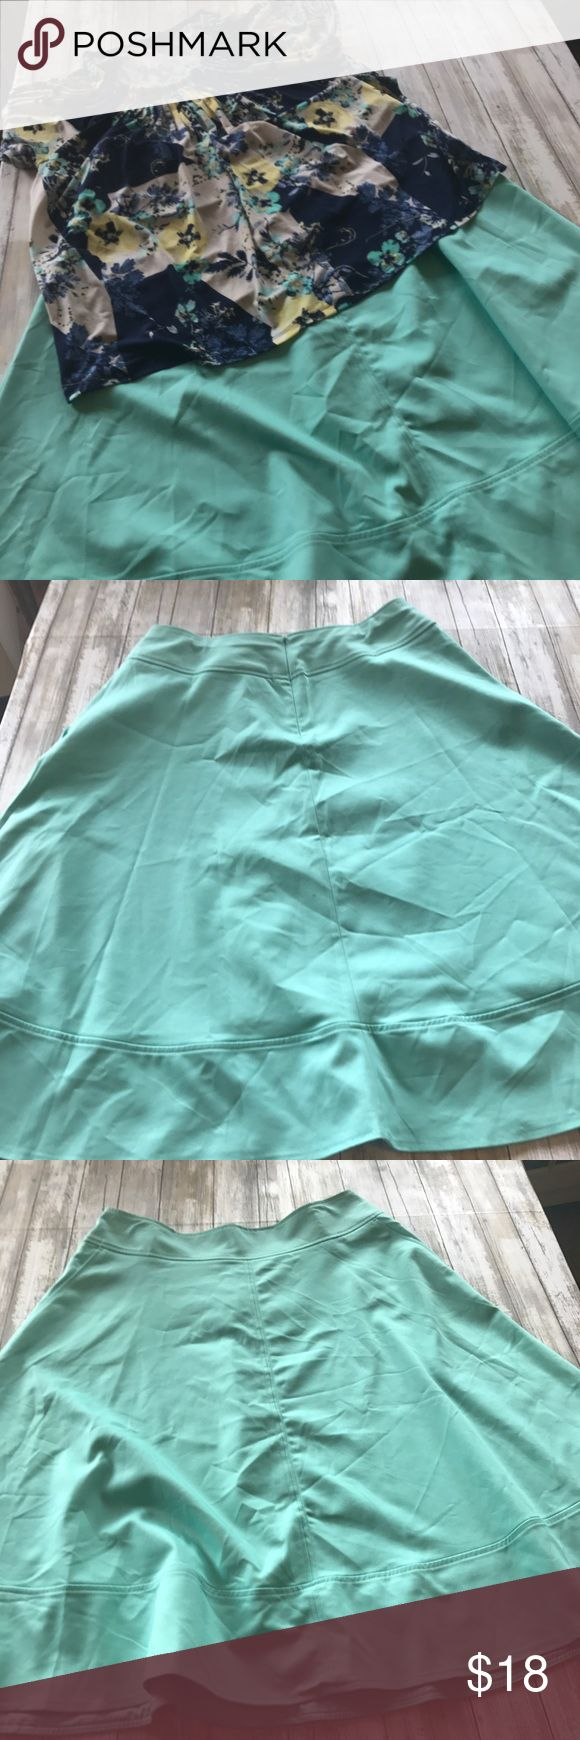 """Lane Bryant skirt Mint green skirt new without tags. Part of the Lane Bryant modernist collection.Waist 18"""" length 29"""" Lane Bryant Skirts Circle & Skater"""